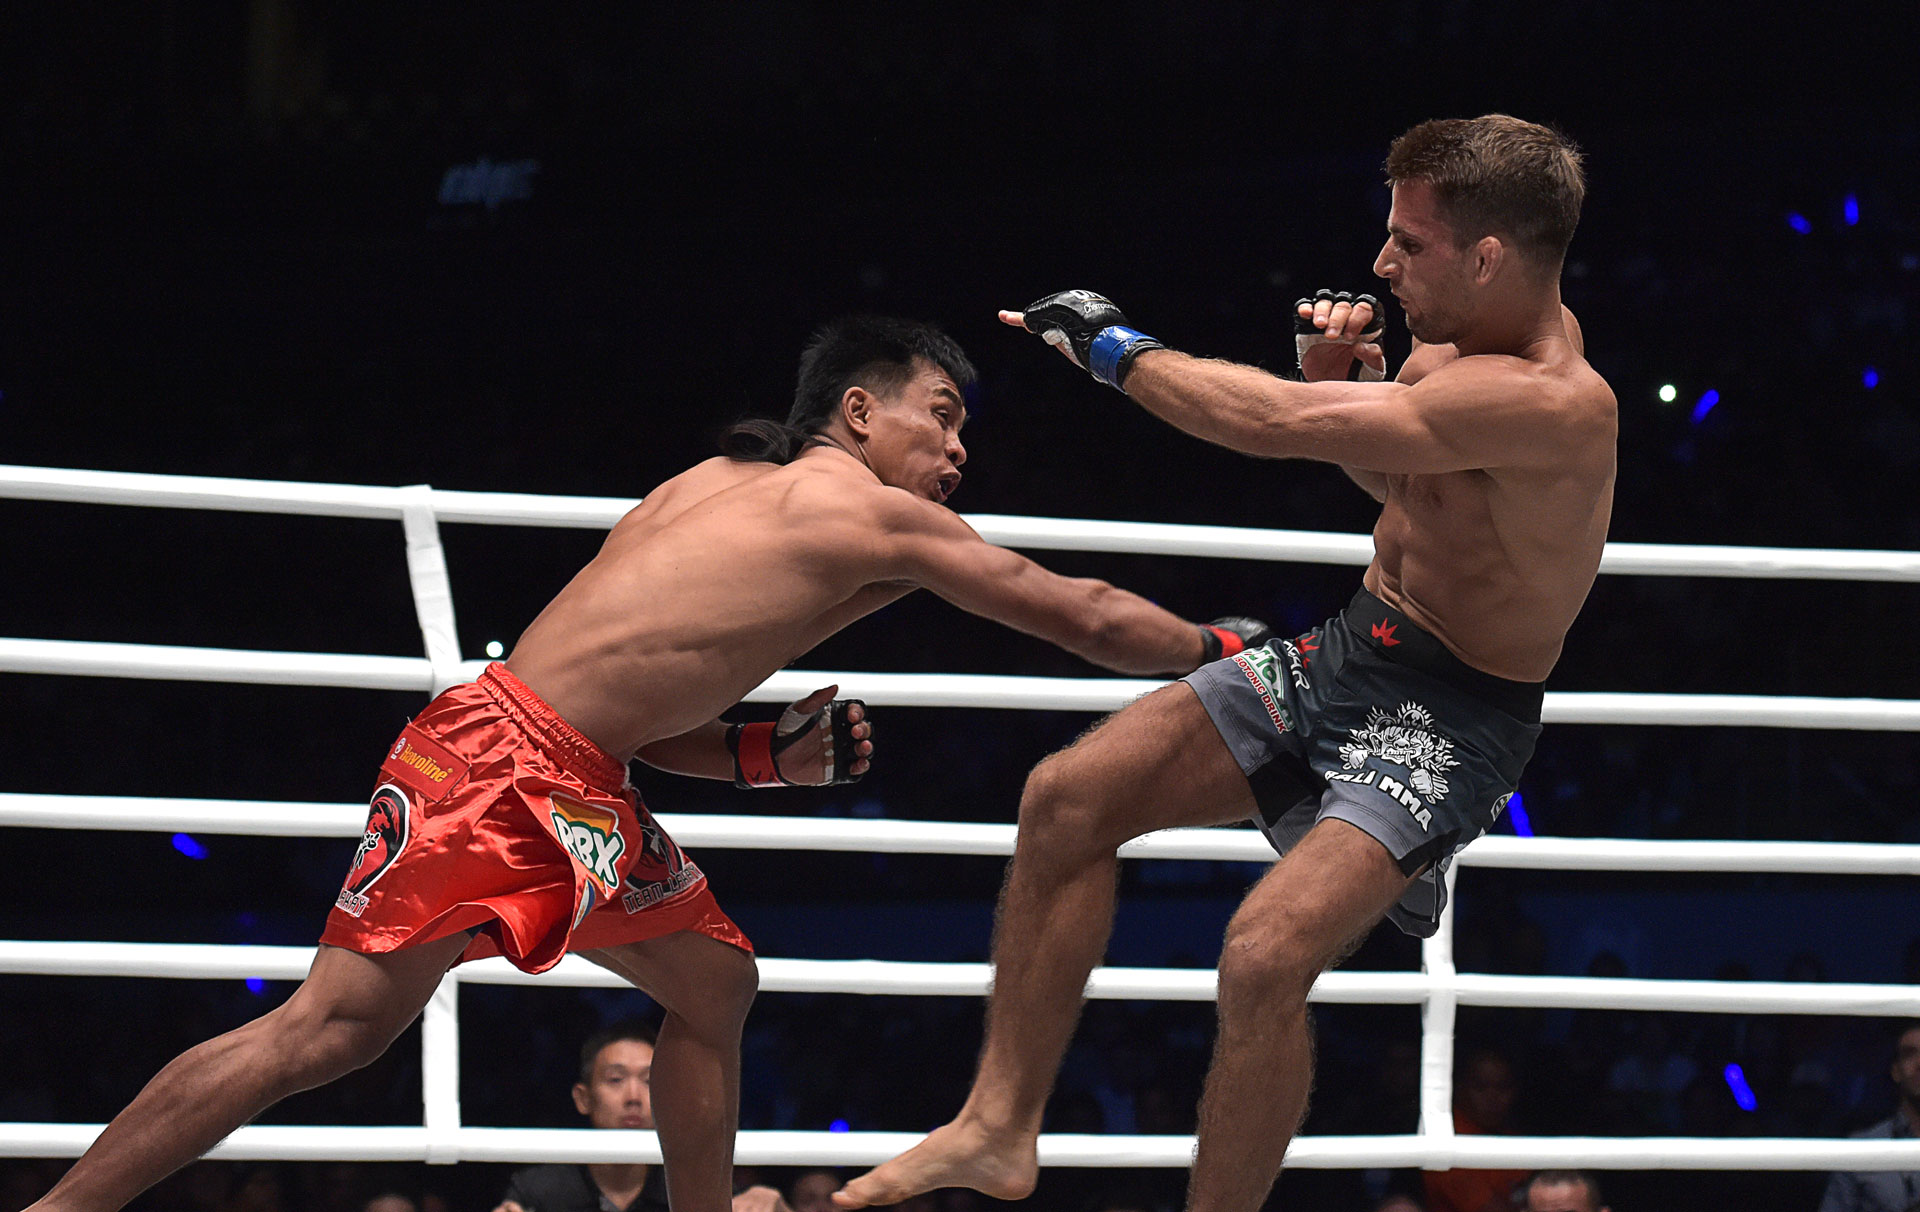 KEVIN BELINGON DOMINATES ANDREW LEONE TO WIN BY SECOND ROUND TKO PLUS: GIORGIO PETROSYAN OUTCLASSES JO NATTAWUT TO WIN BY UNANIMOUS DECISION ALSO: HONORIO BANARIO CONTINUES WINNING WAYS AT EXPENSE OF ADRIAN PANG -